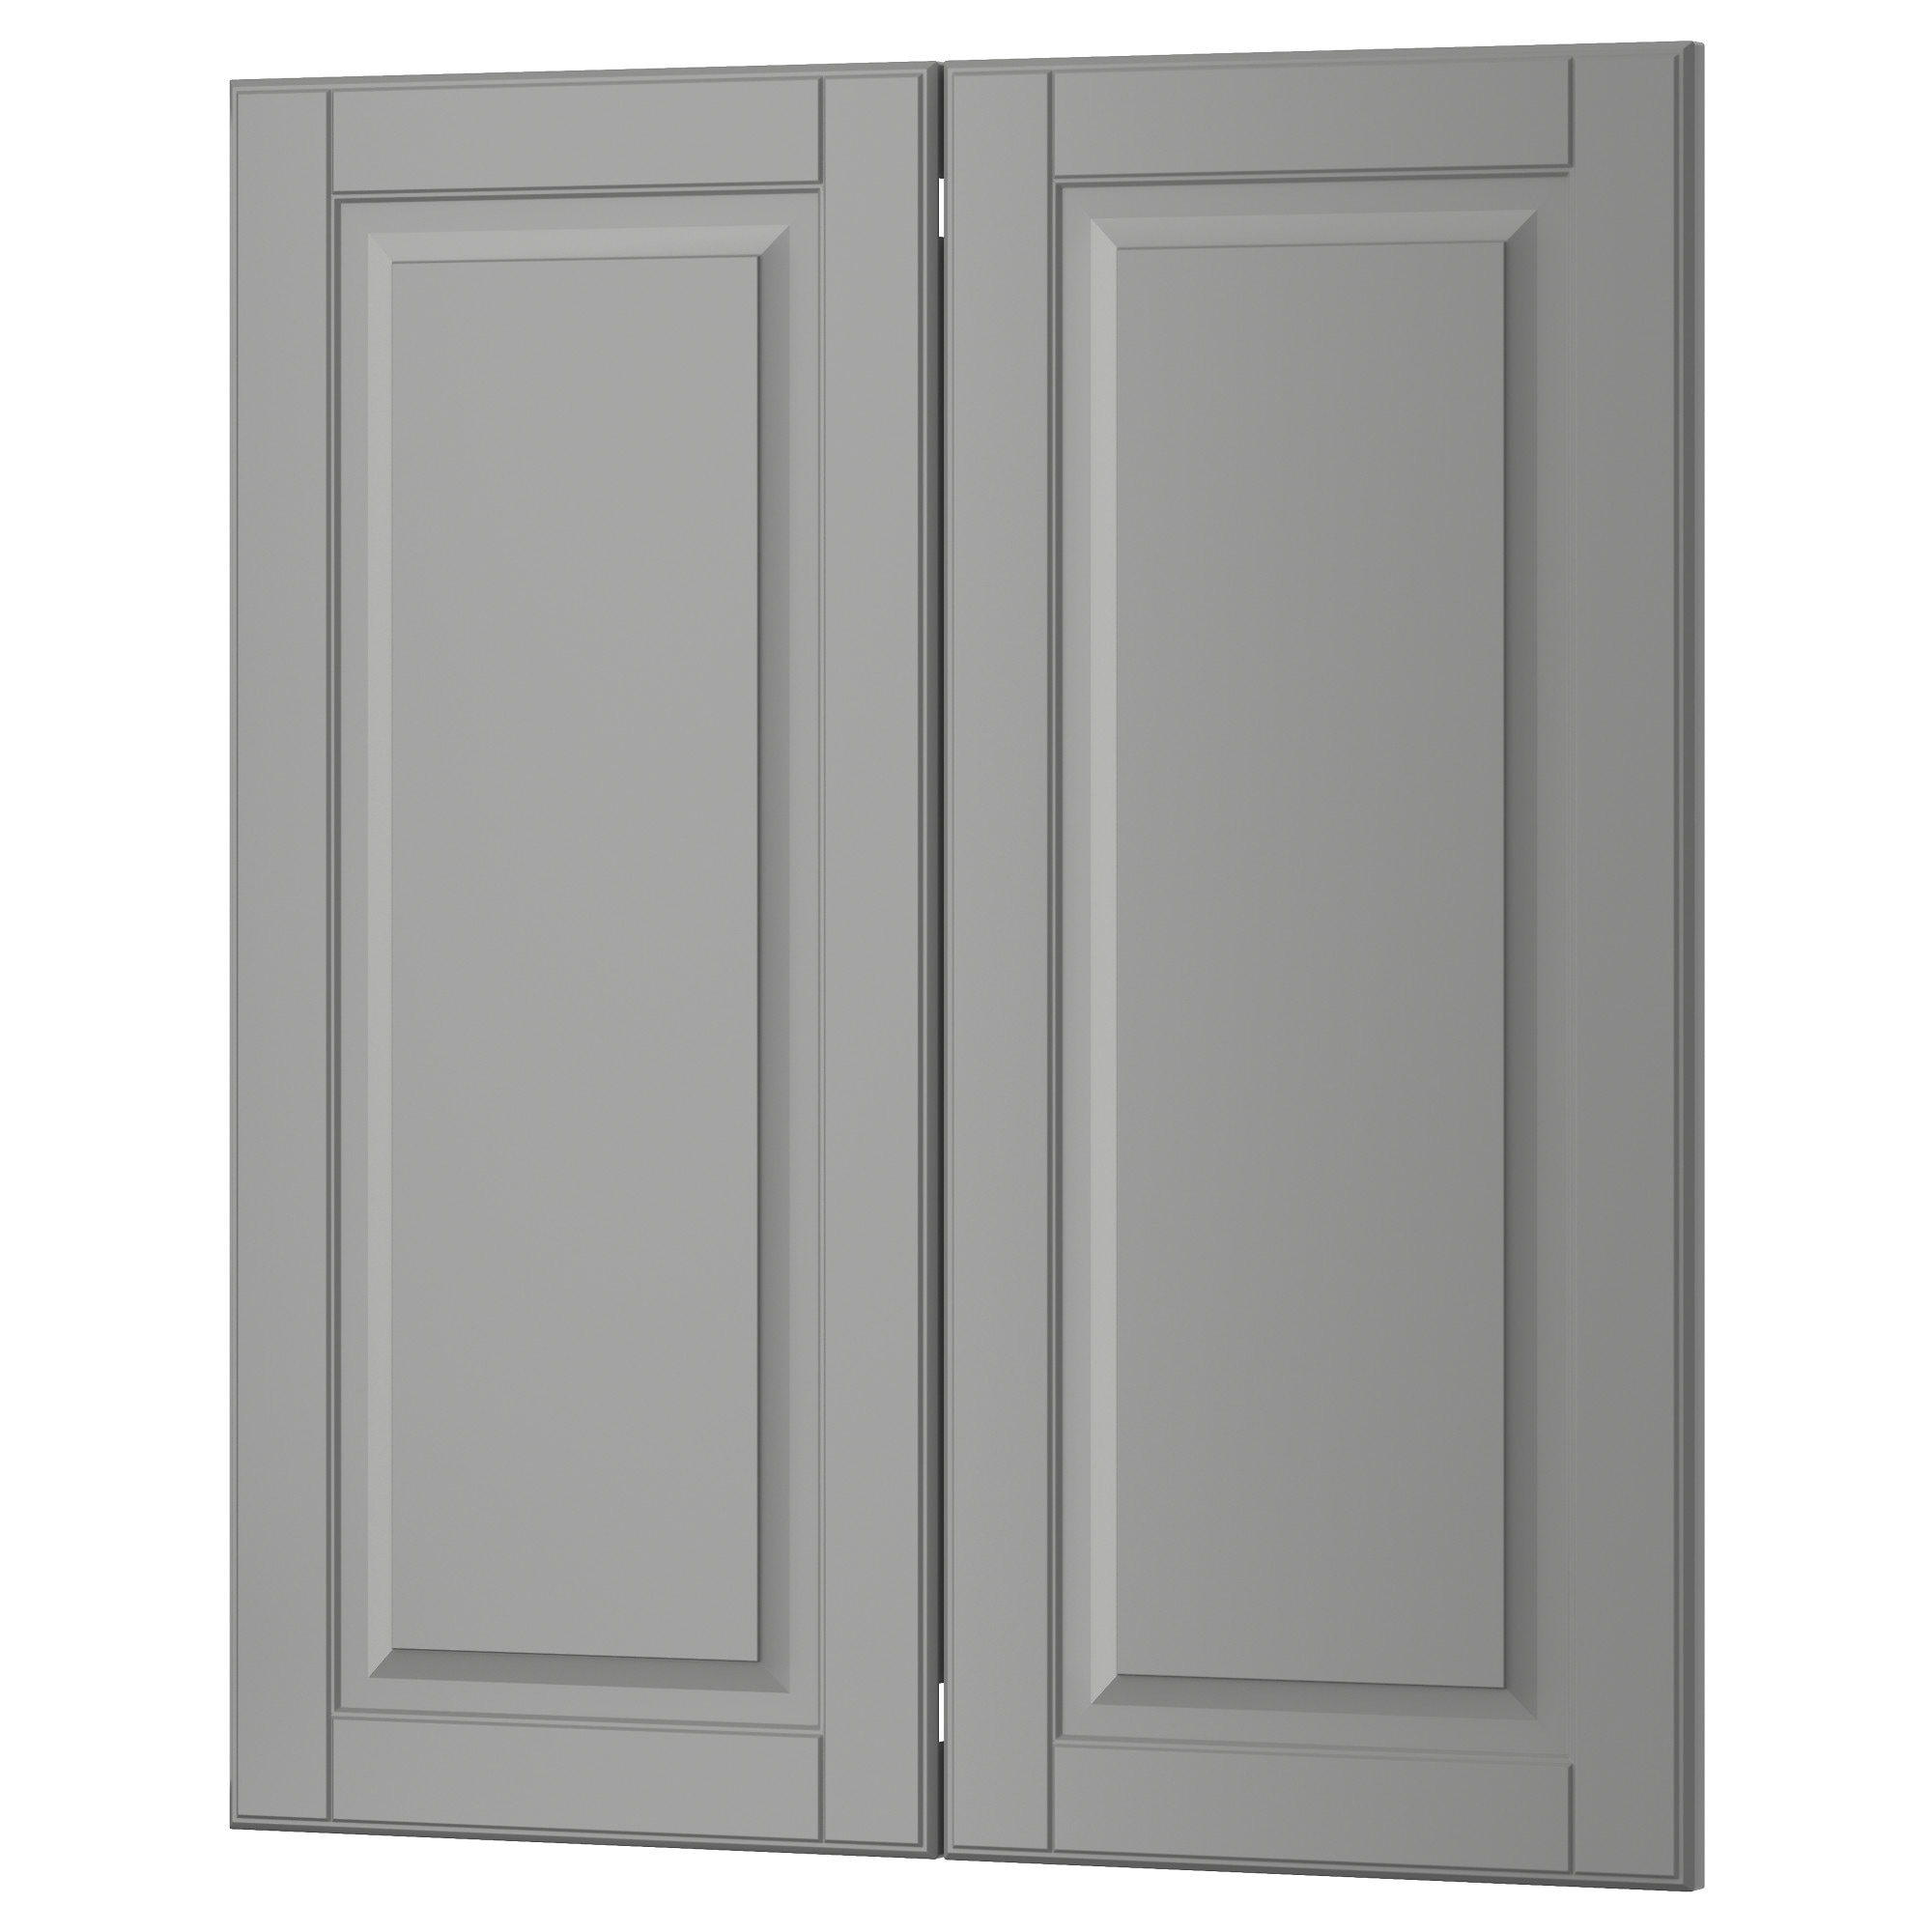 Painting Ikea Kitchen Doors Bodbyn 2 P Door Corner Base Cabinet Set Ikea